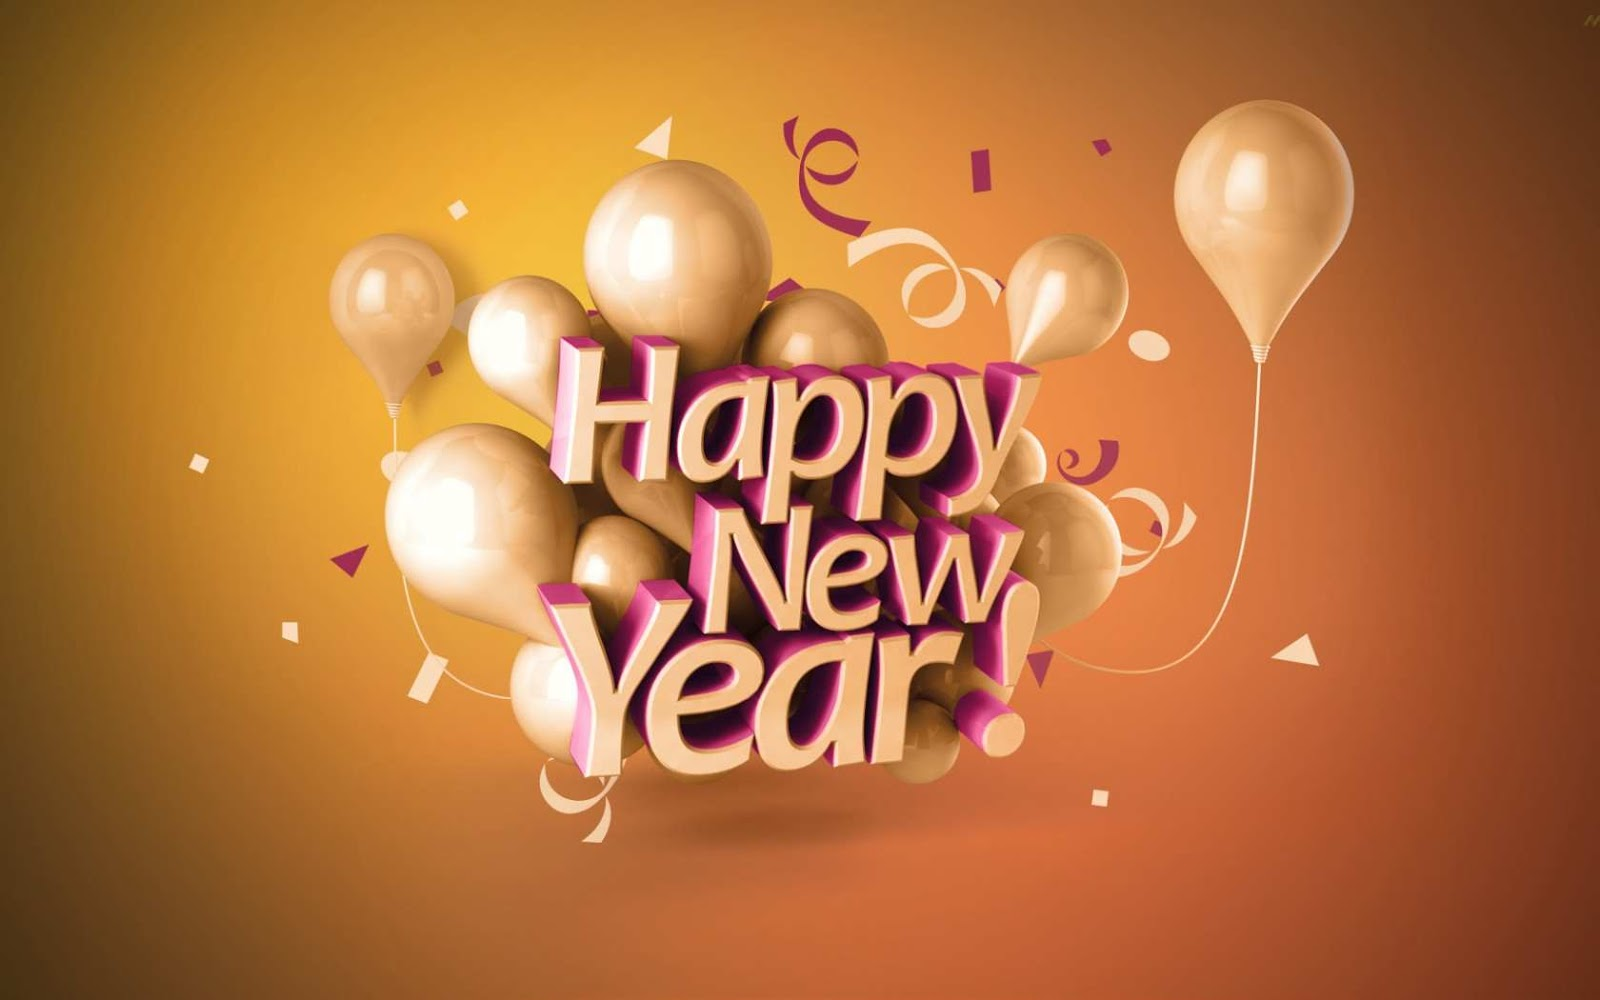 1000+] Happy New Year 2020 HD Wallpapers, Image, Pictures